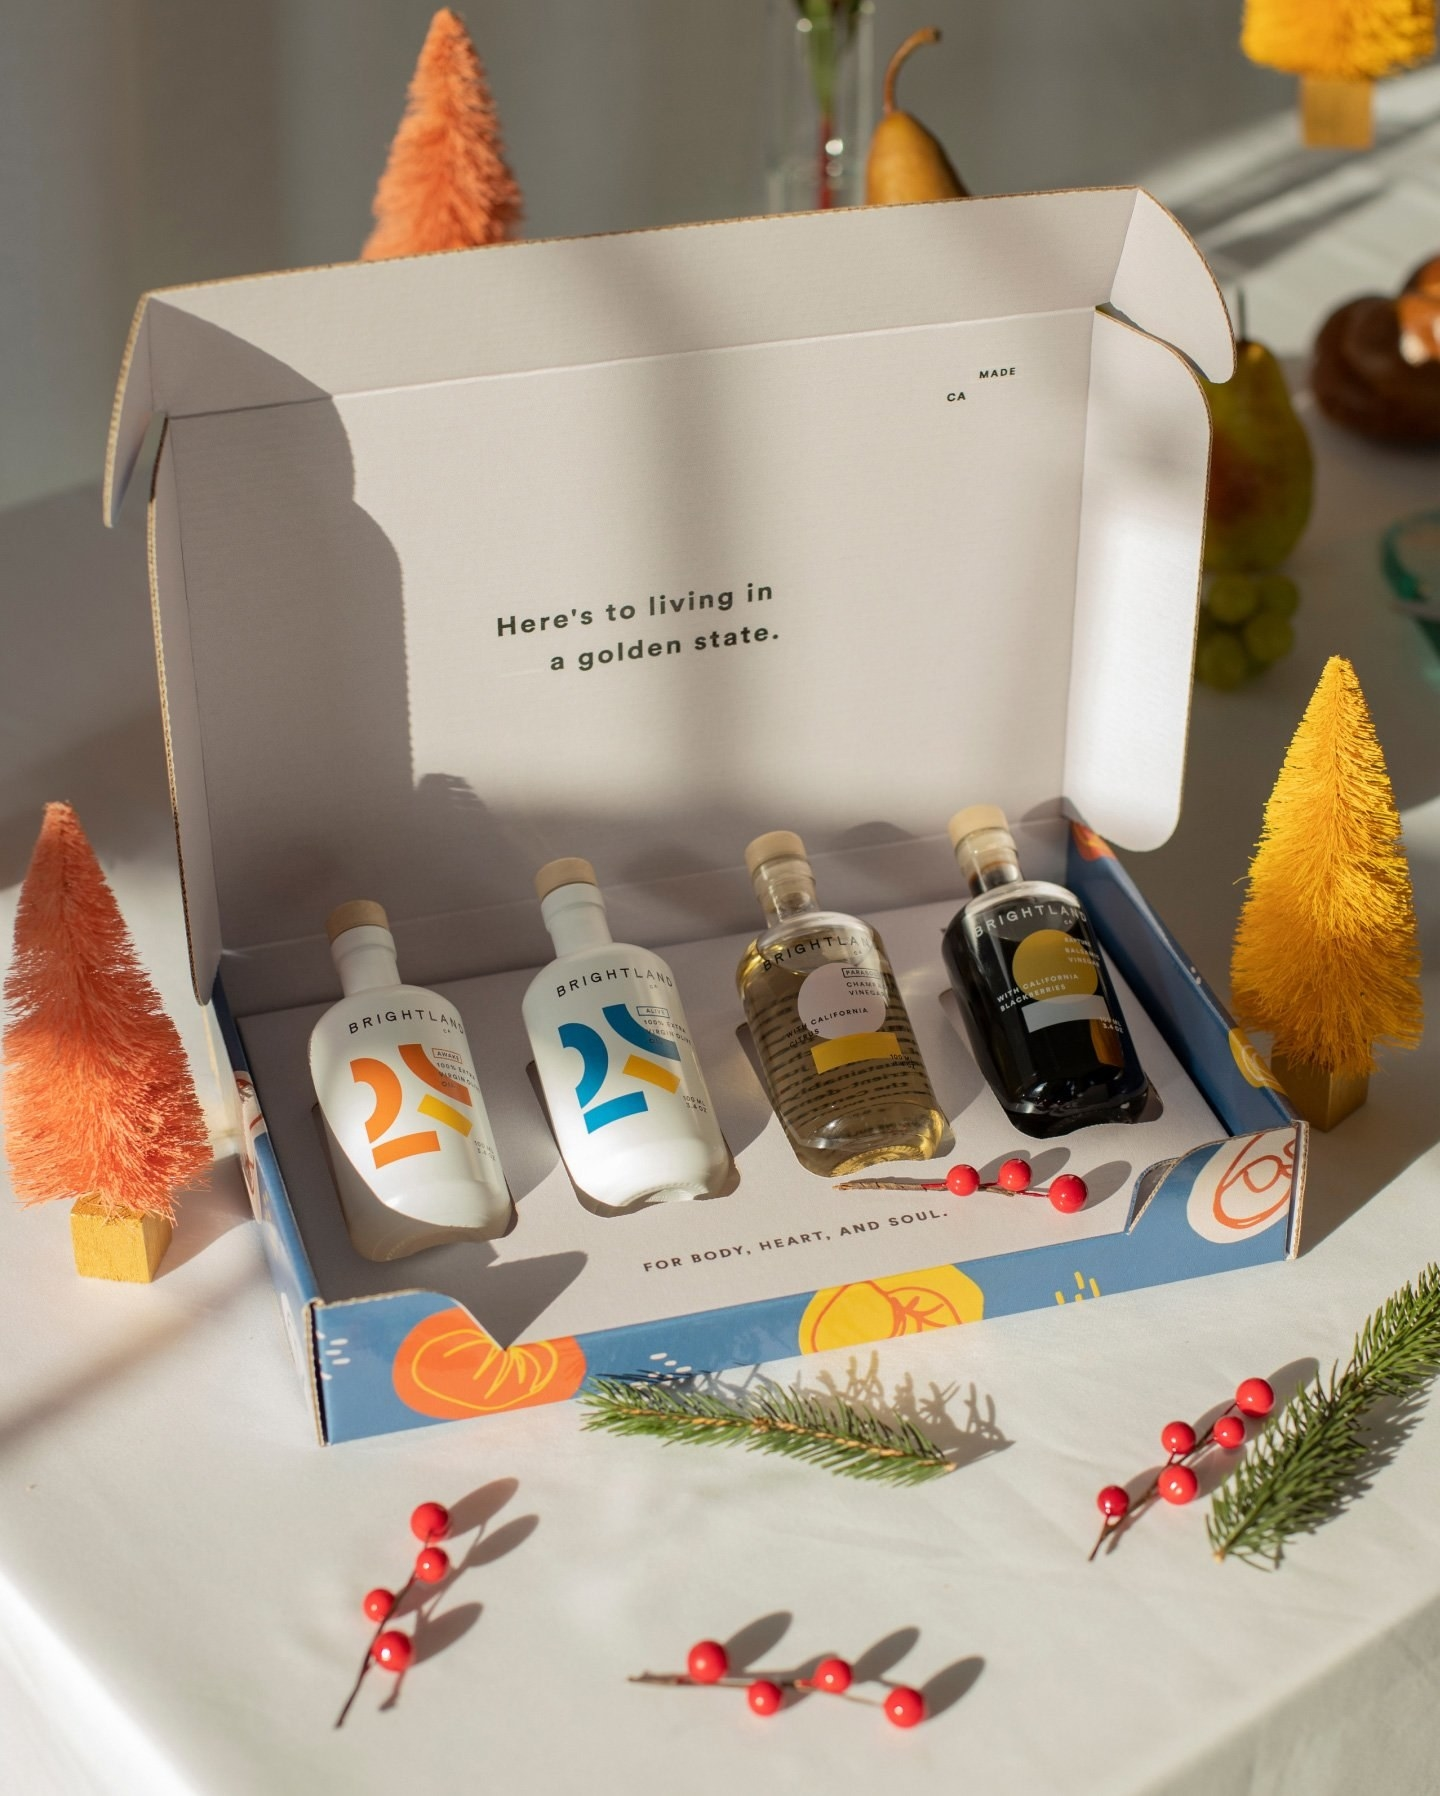 The mini essentials kit which comes with two olive oils and two vinegars